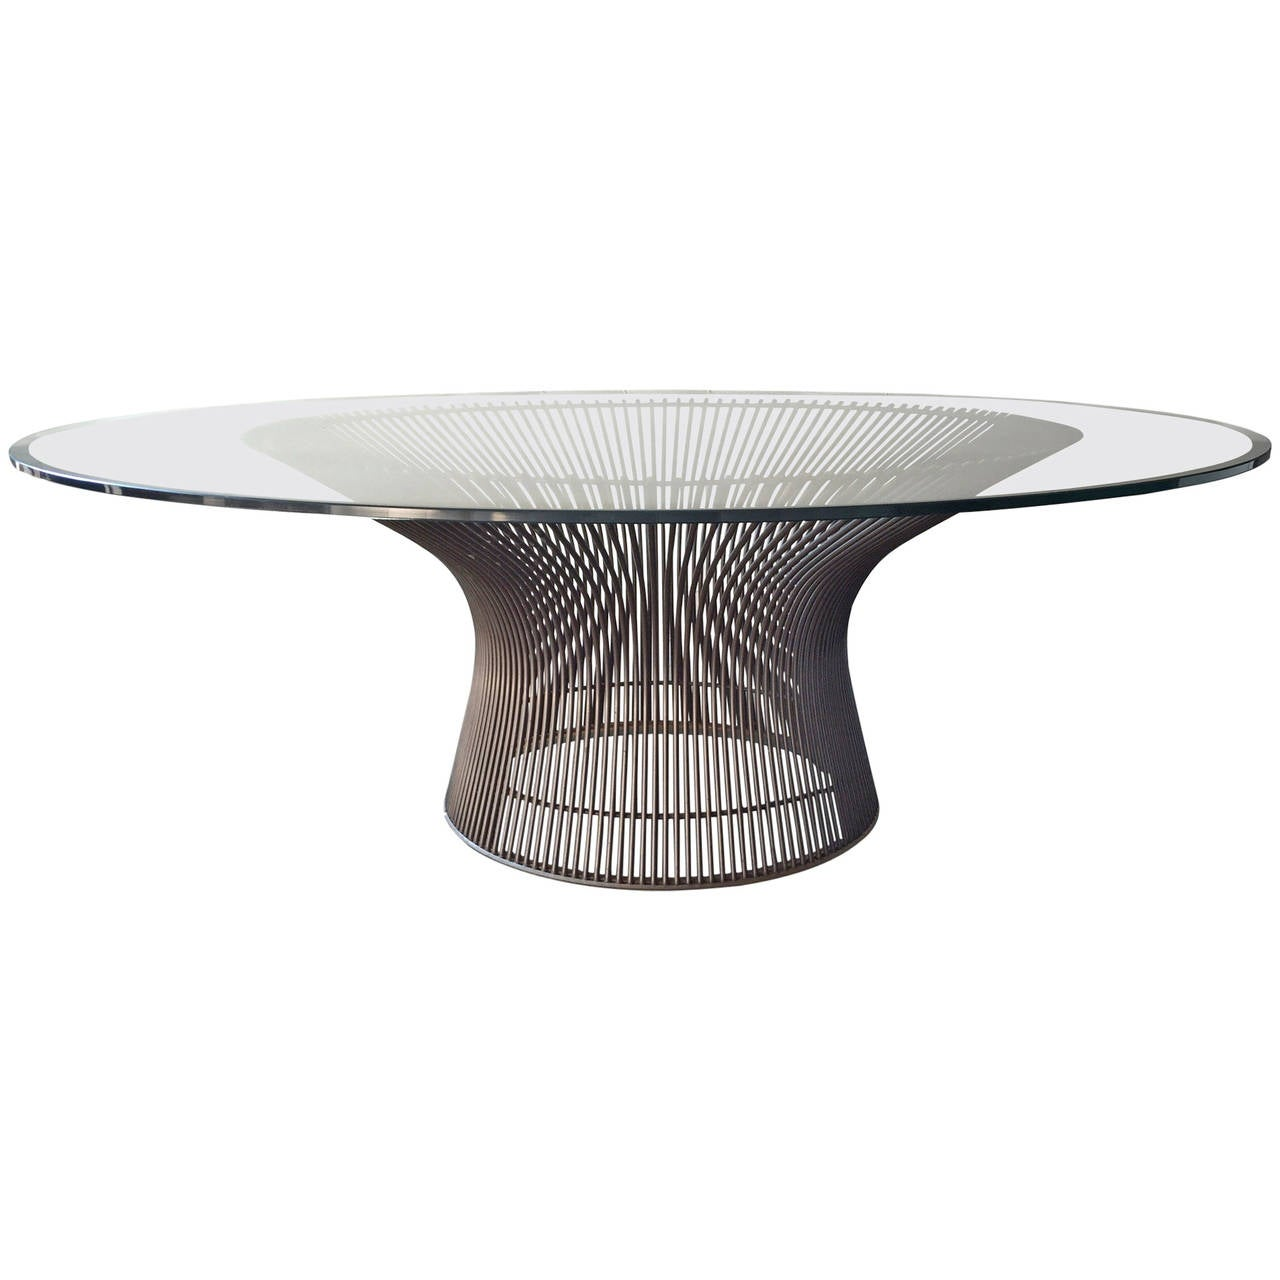 Warren platner bronze coffee table knoll 1966 at 1stdibs for Warren platner coffee table